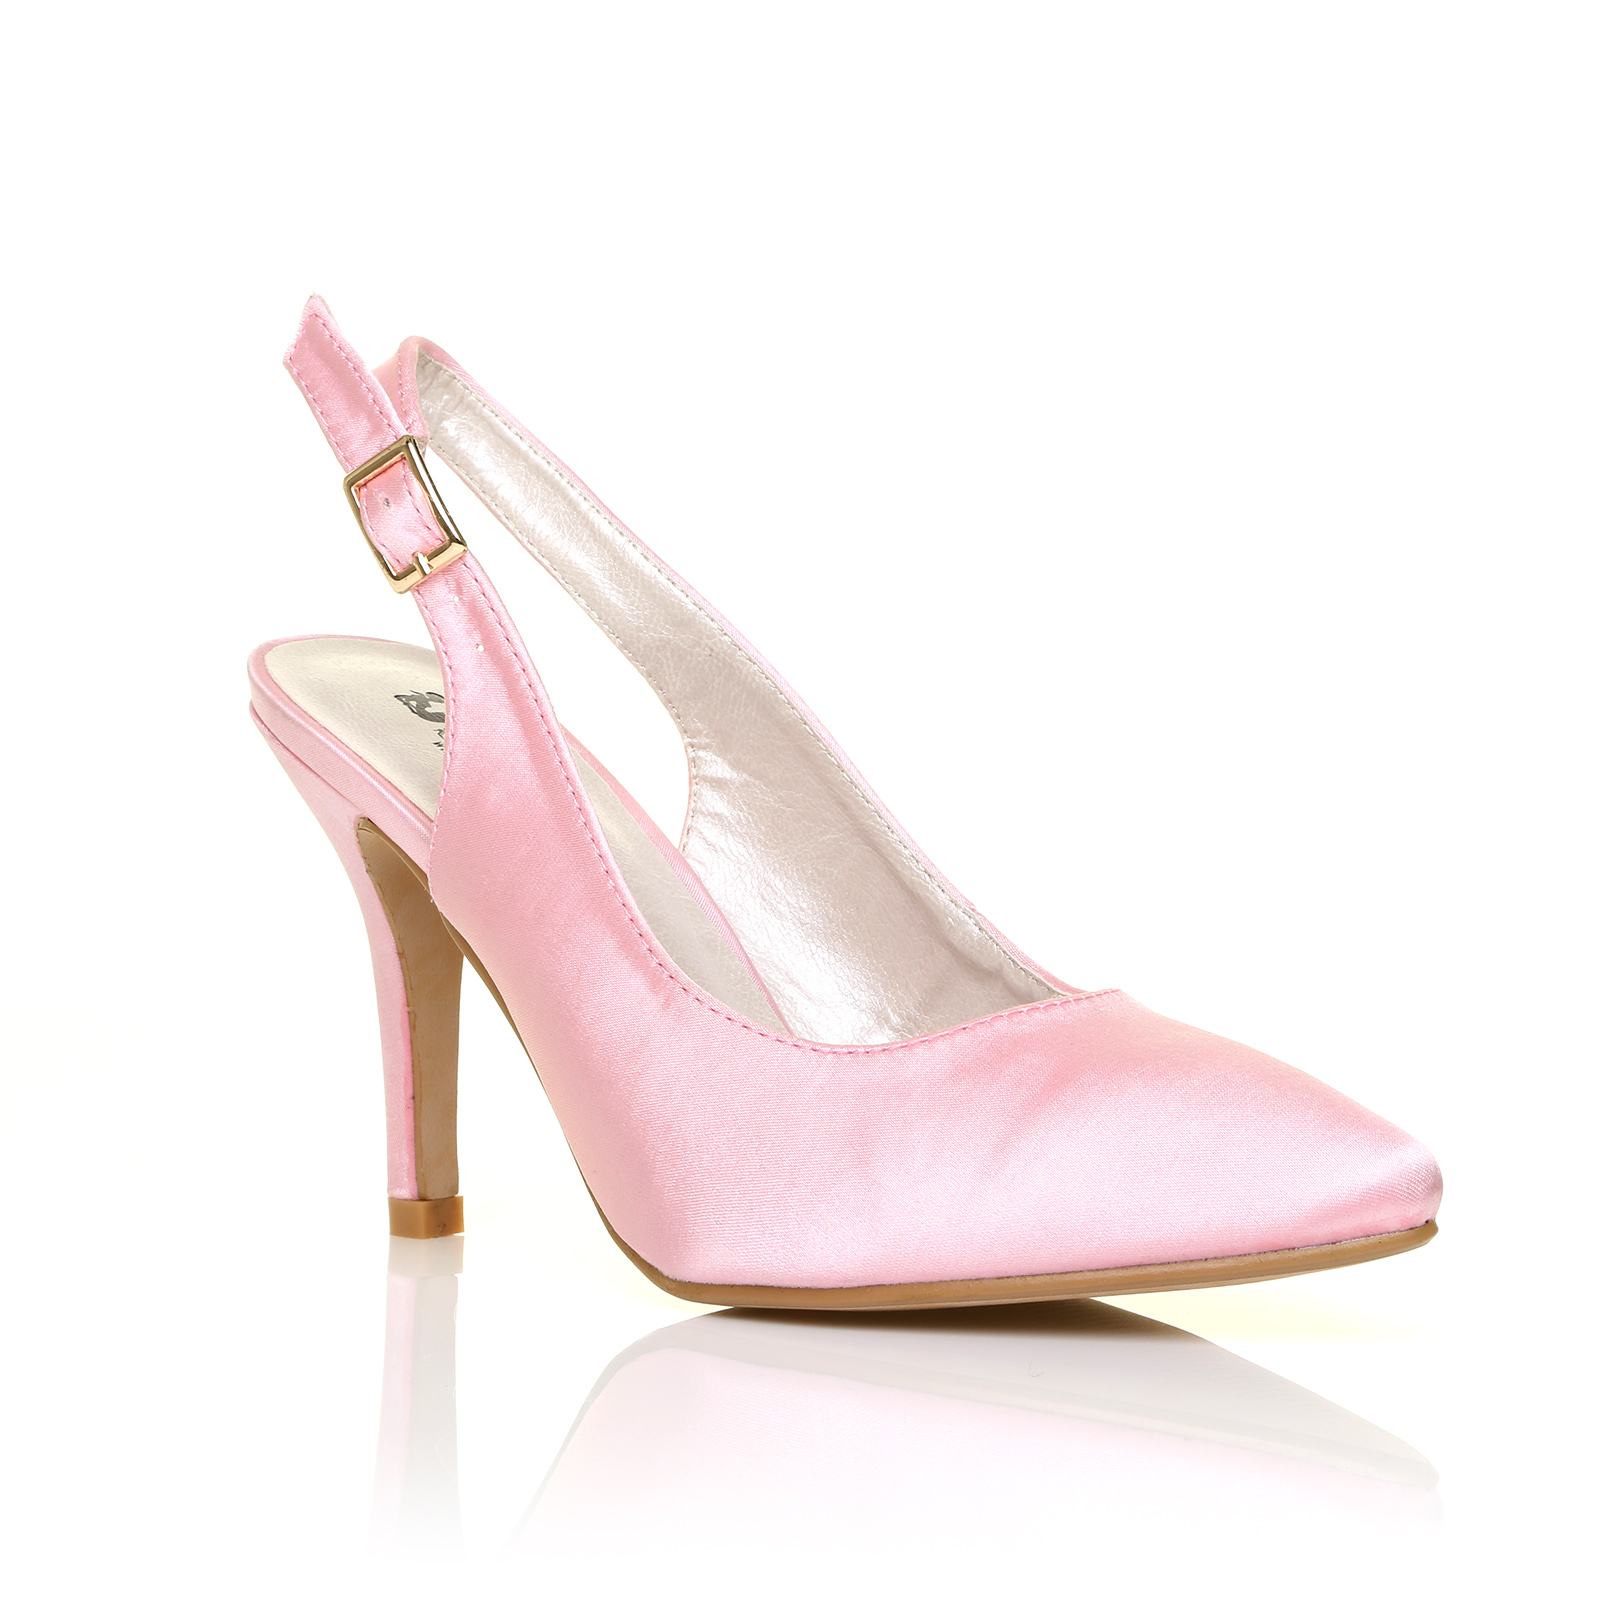 Have your pick of Women's Pink Shoes, Juniors Pink Shoes and Girls Pink Shoes when you shop at Macy's. Macy's Presents: The Edit - A curated mix of fashion and inspiration Check It Out Free Shipping with $99 purchase + Free Store Pickup.